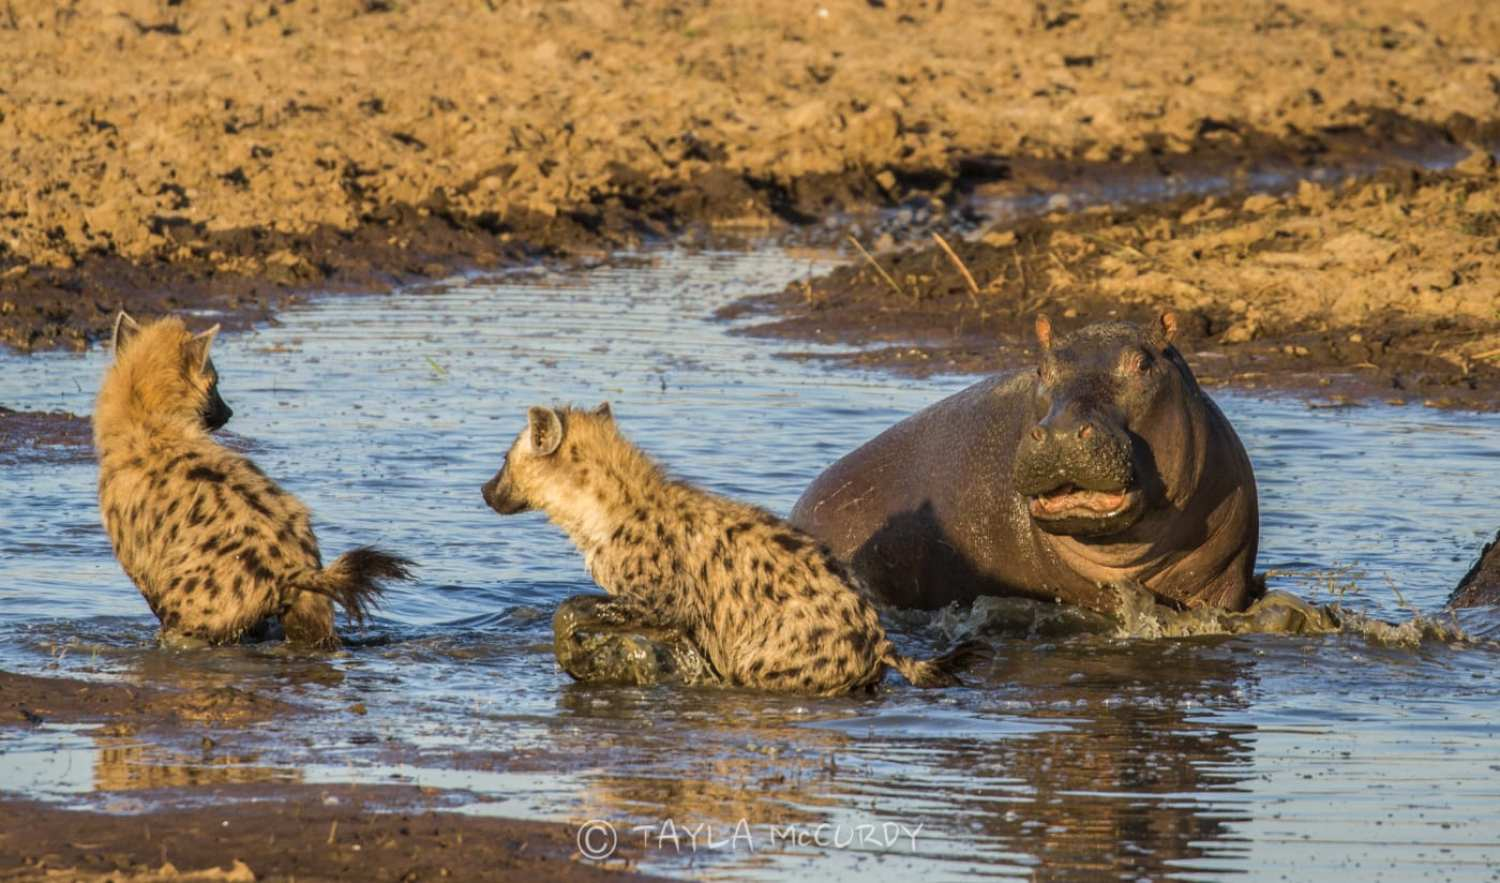 Hippo and hyena in the water